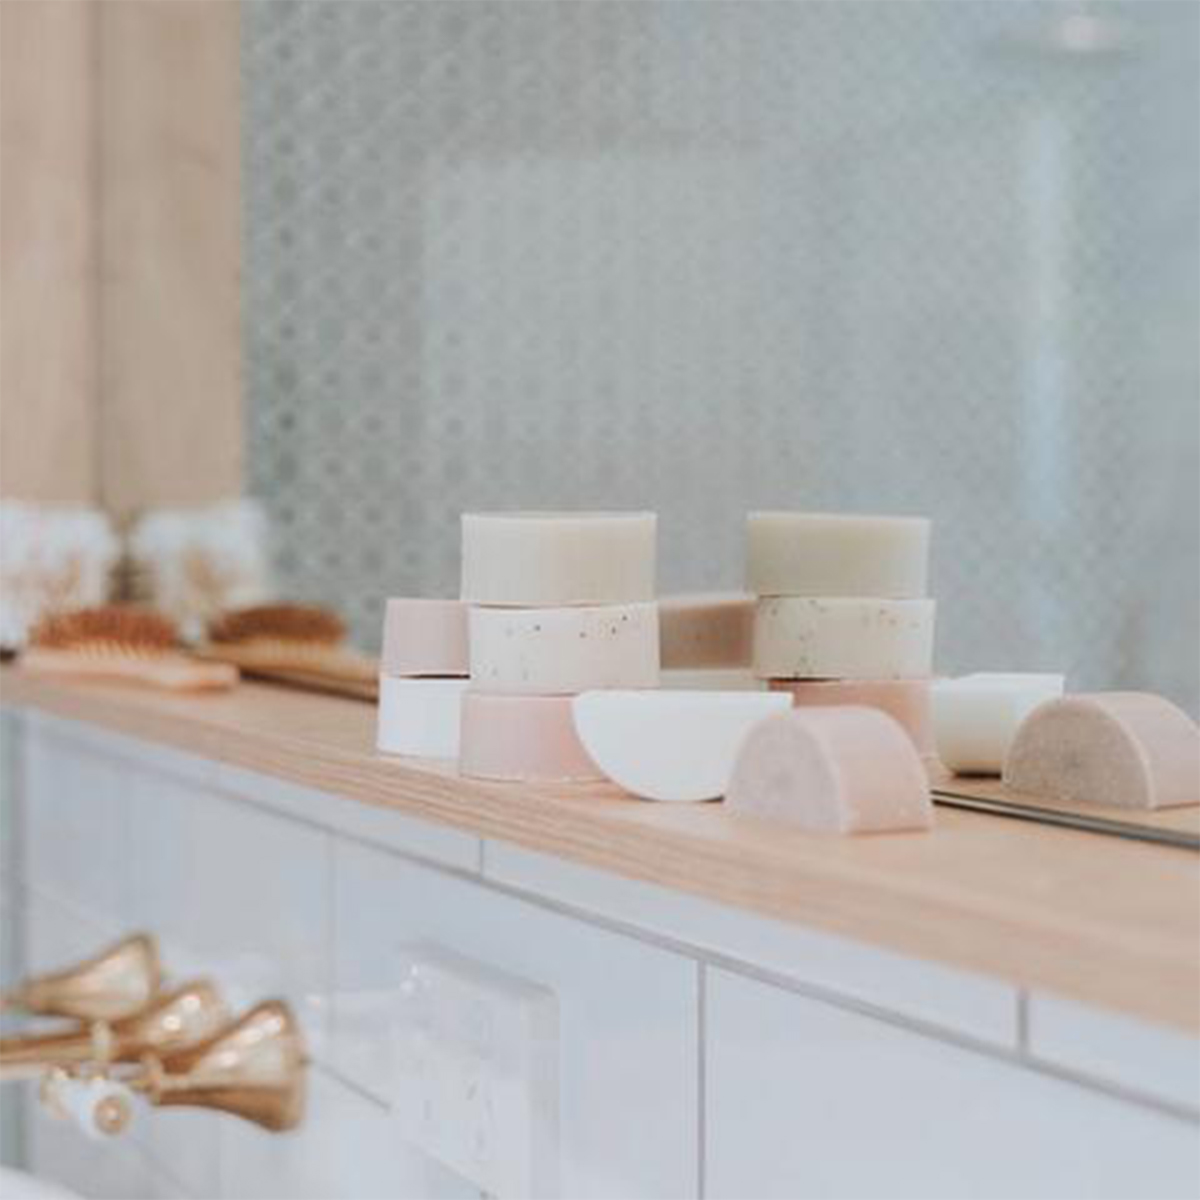 several soap bars lined and stacked on a bathroom mirror sill